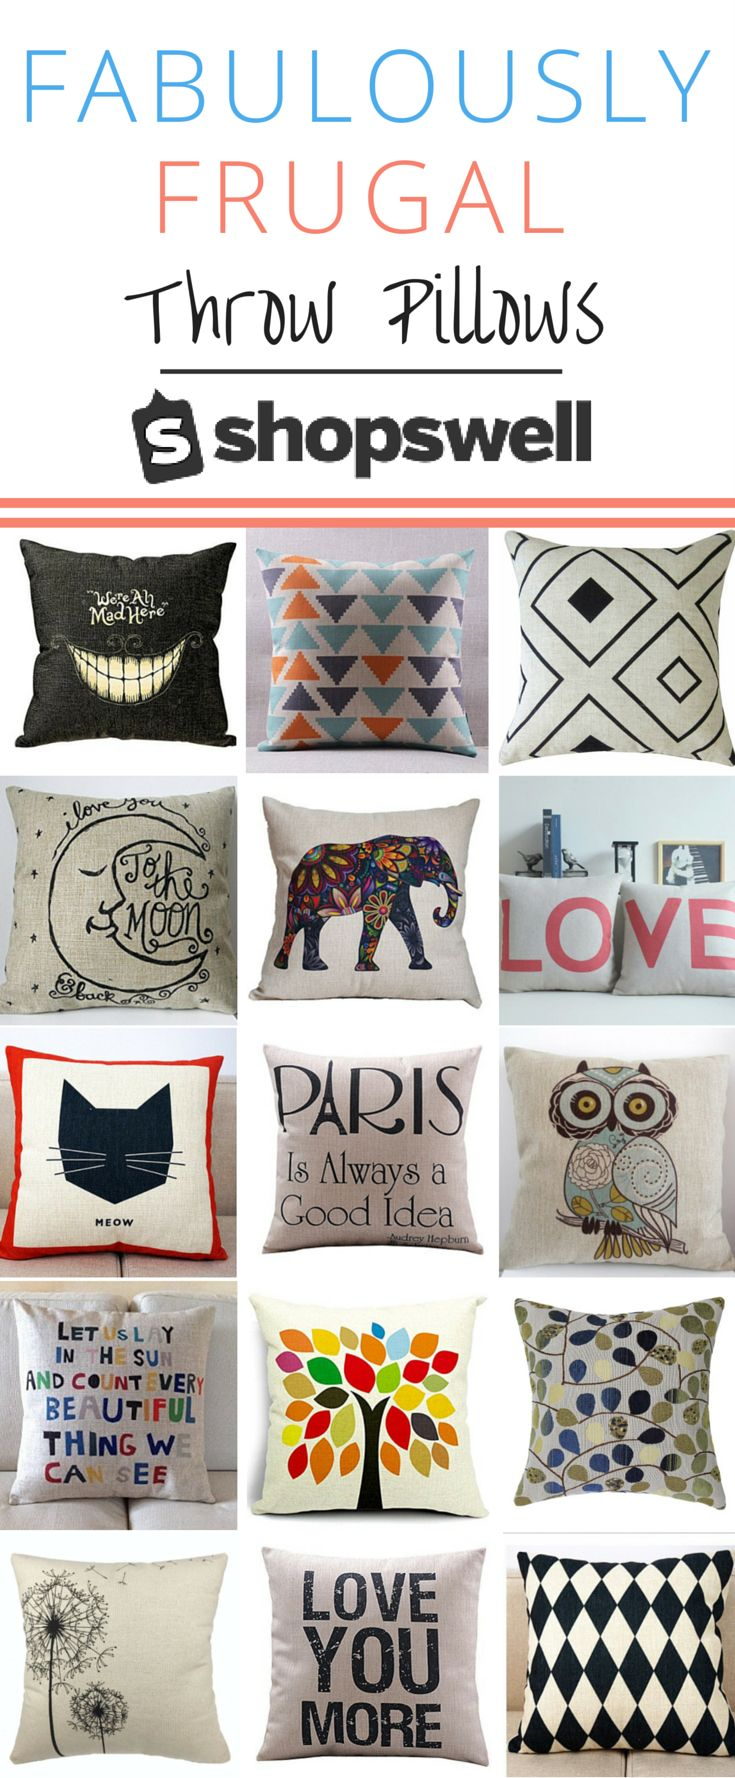 Fabulously frugal throw pillows that won't break the bank. Shop these fun home design ideas for less than you'd think.